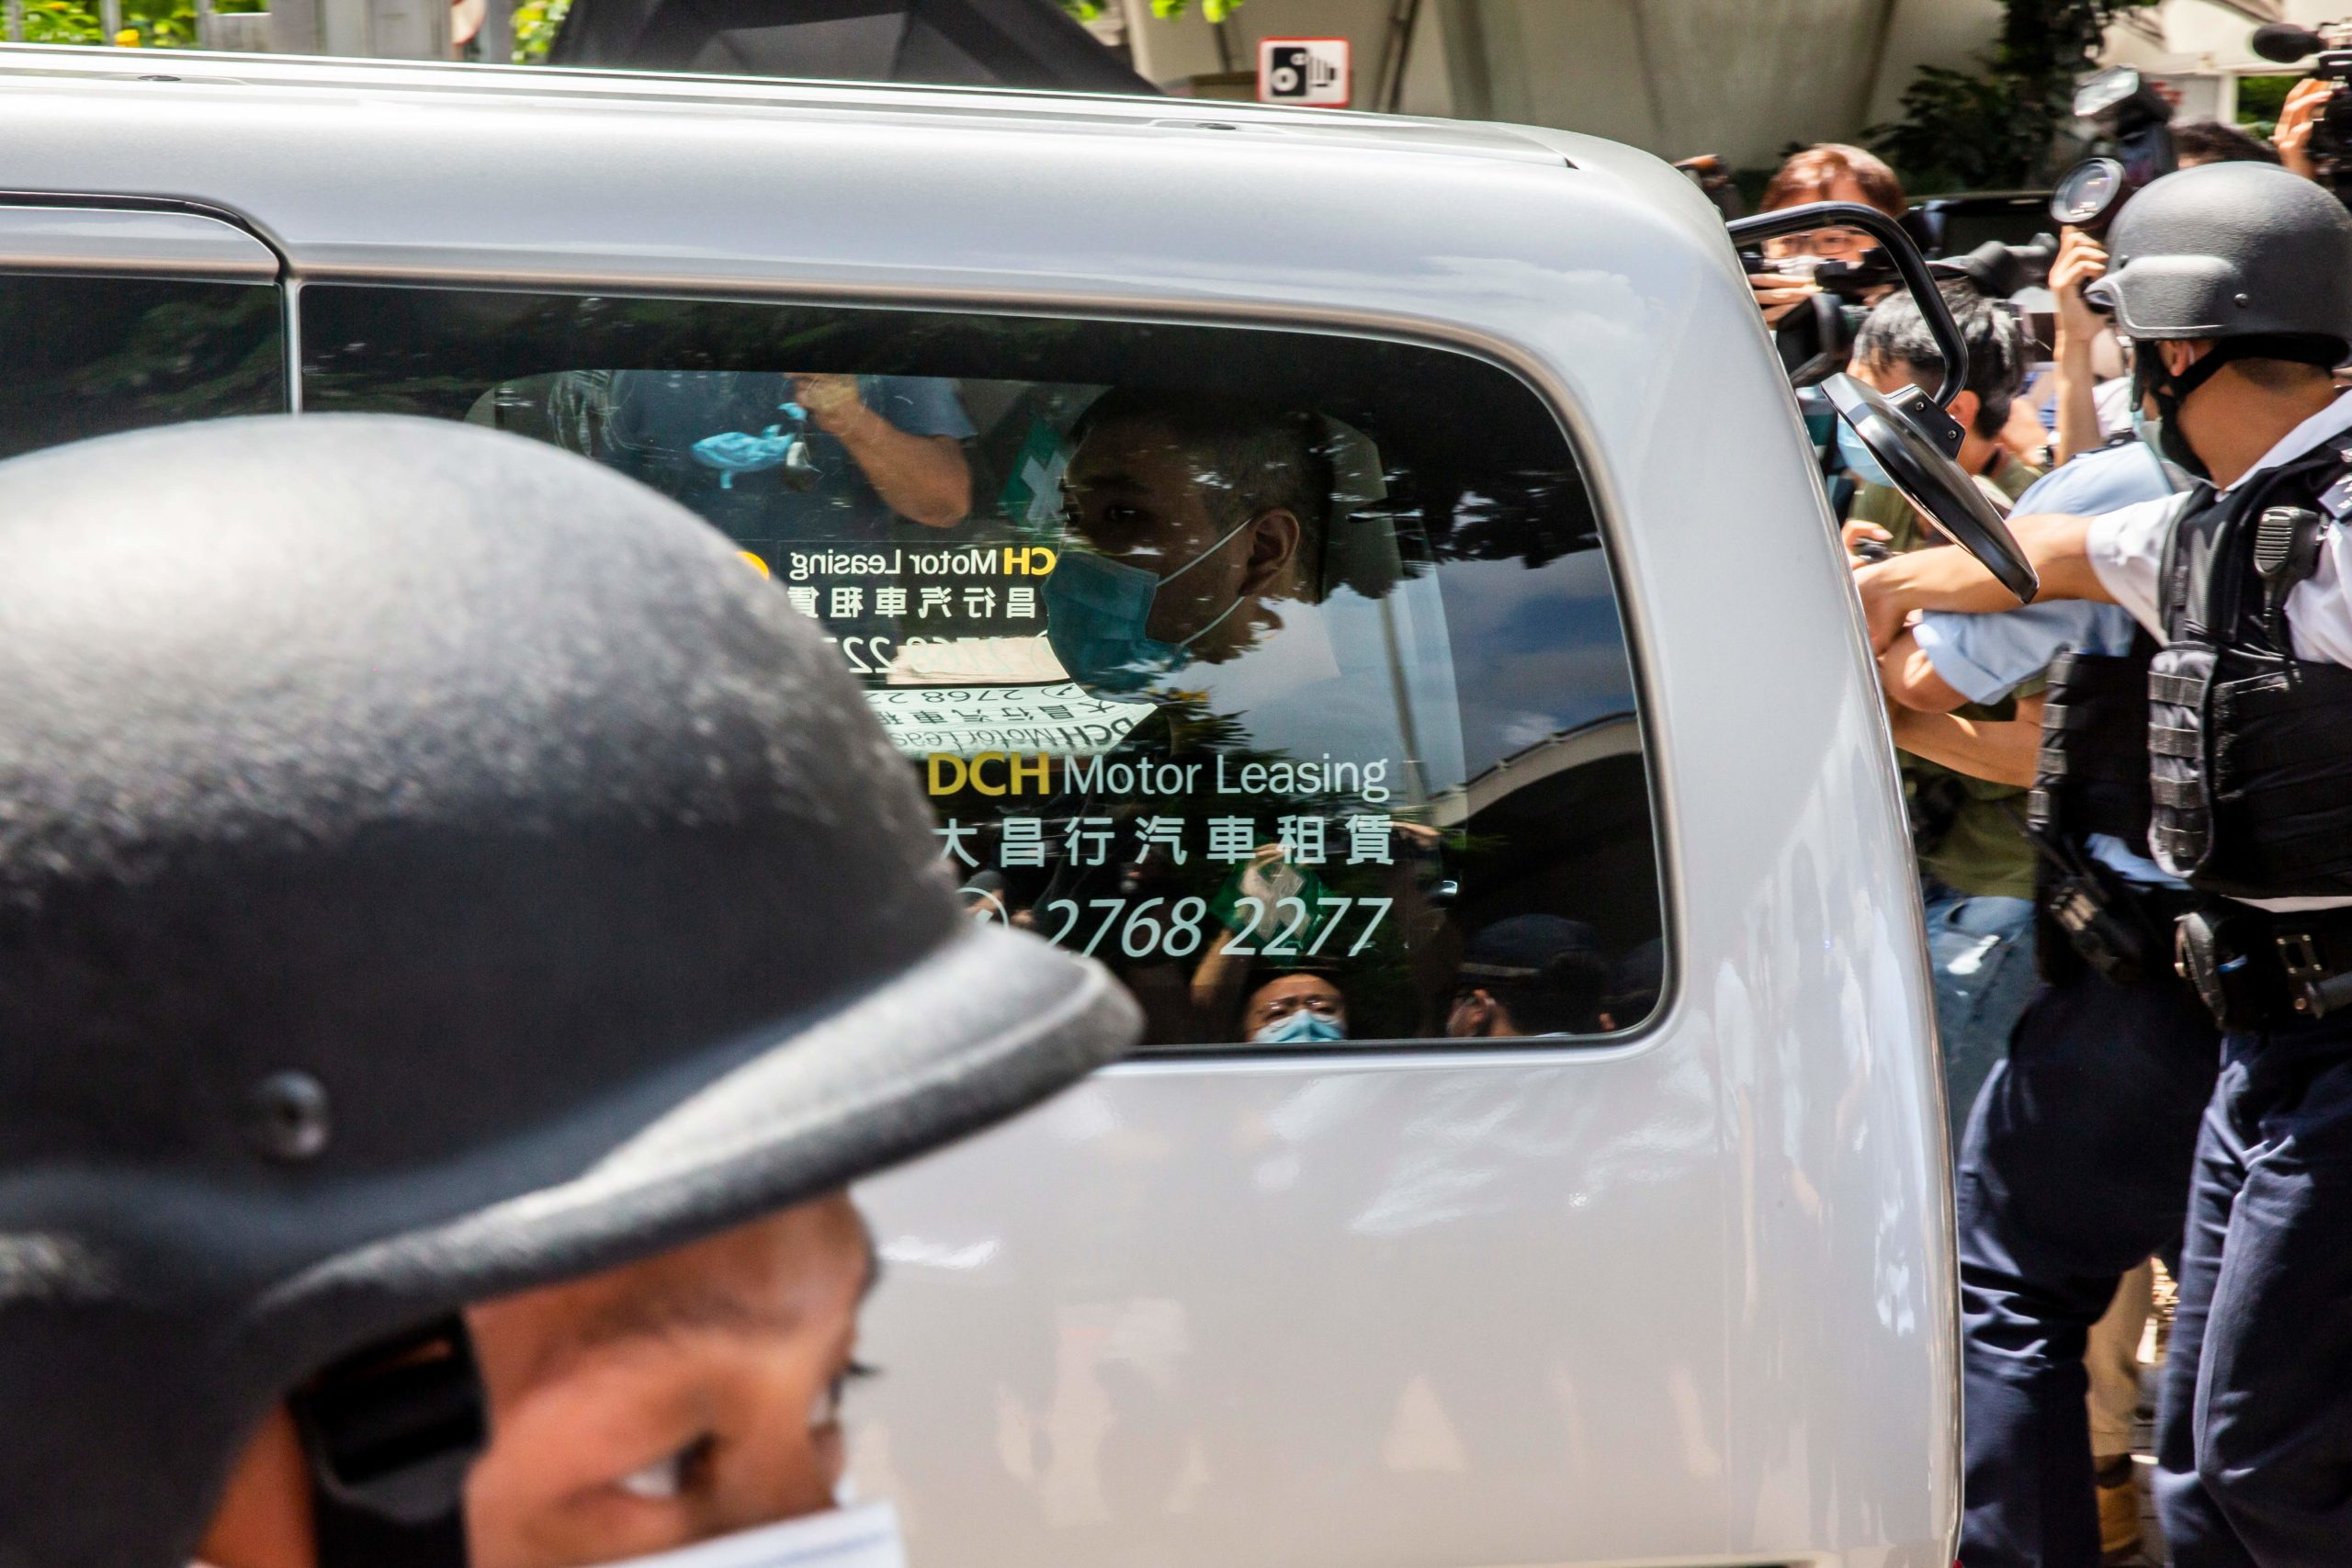 Tong Ying-kit arrives at a court in Hong Kong on July 6, 2020. (Isaac Lawrence/AFP via Getty Images)